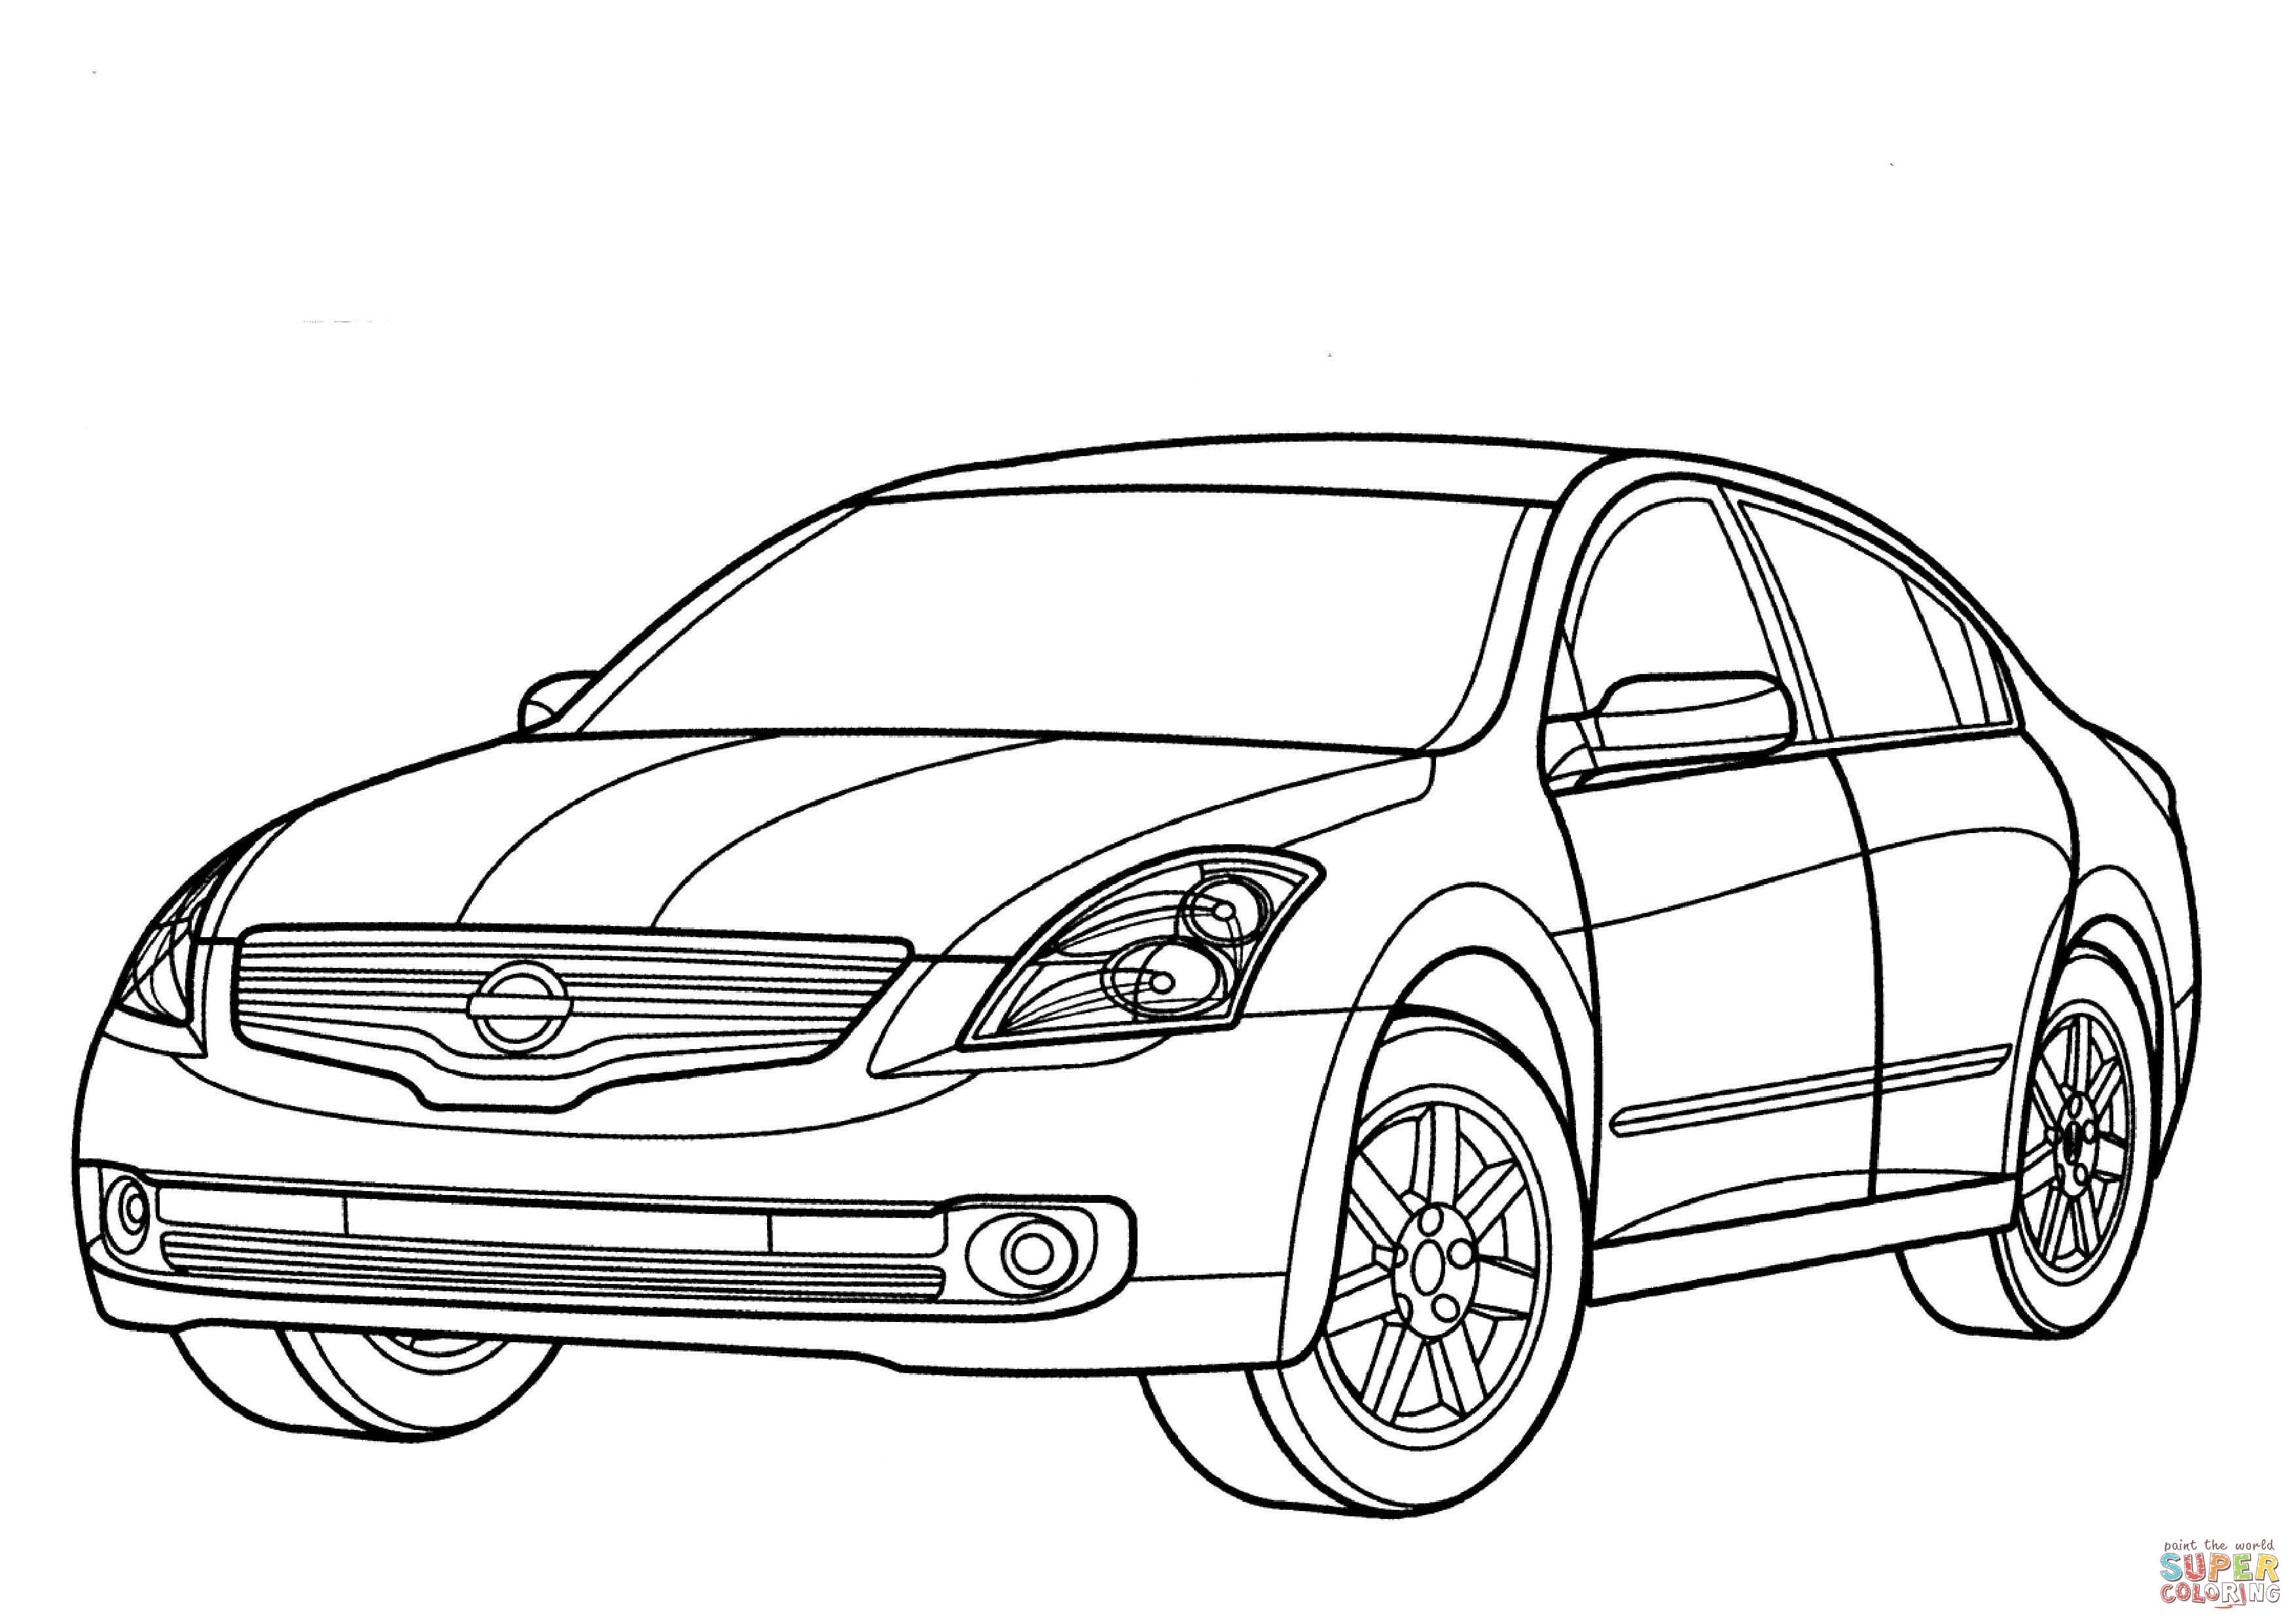 Nissan altima clipart vector free stock Nissan Altima Hybrid coloring page | Free Printable Coloring Pages vector free stock